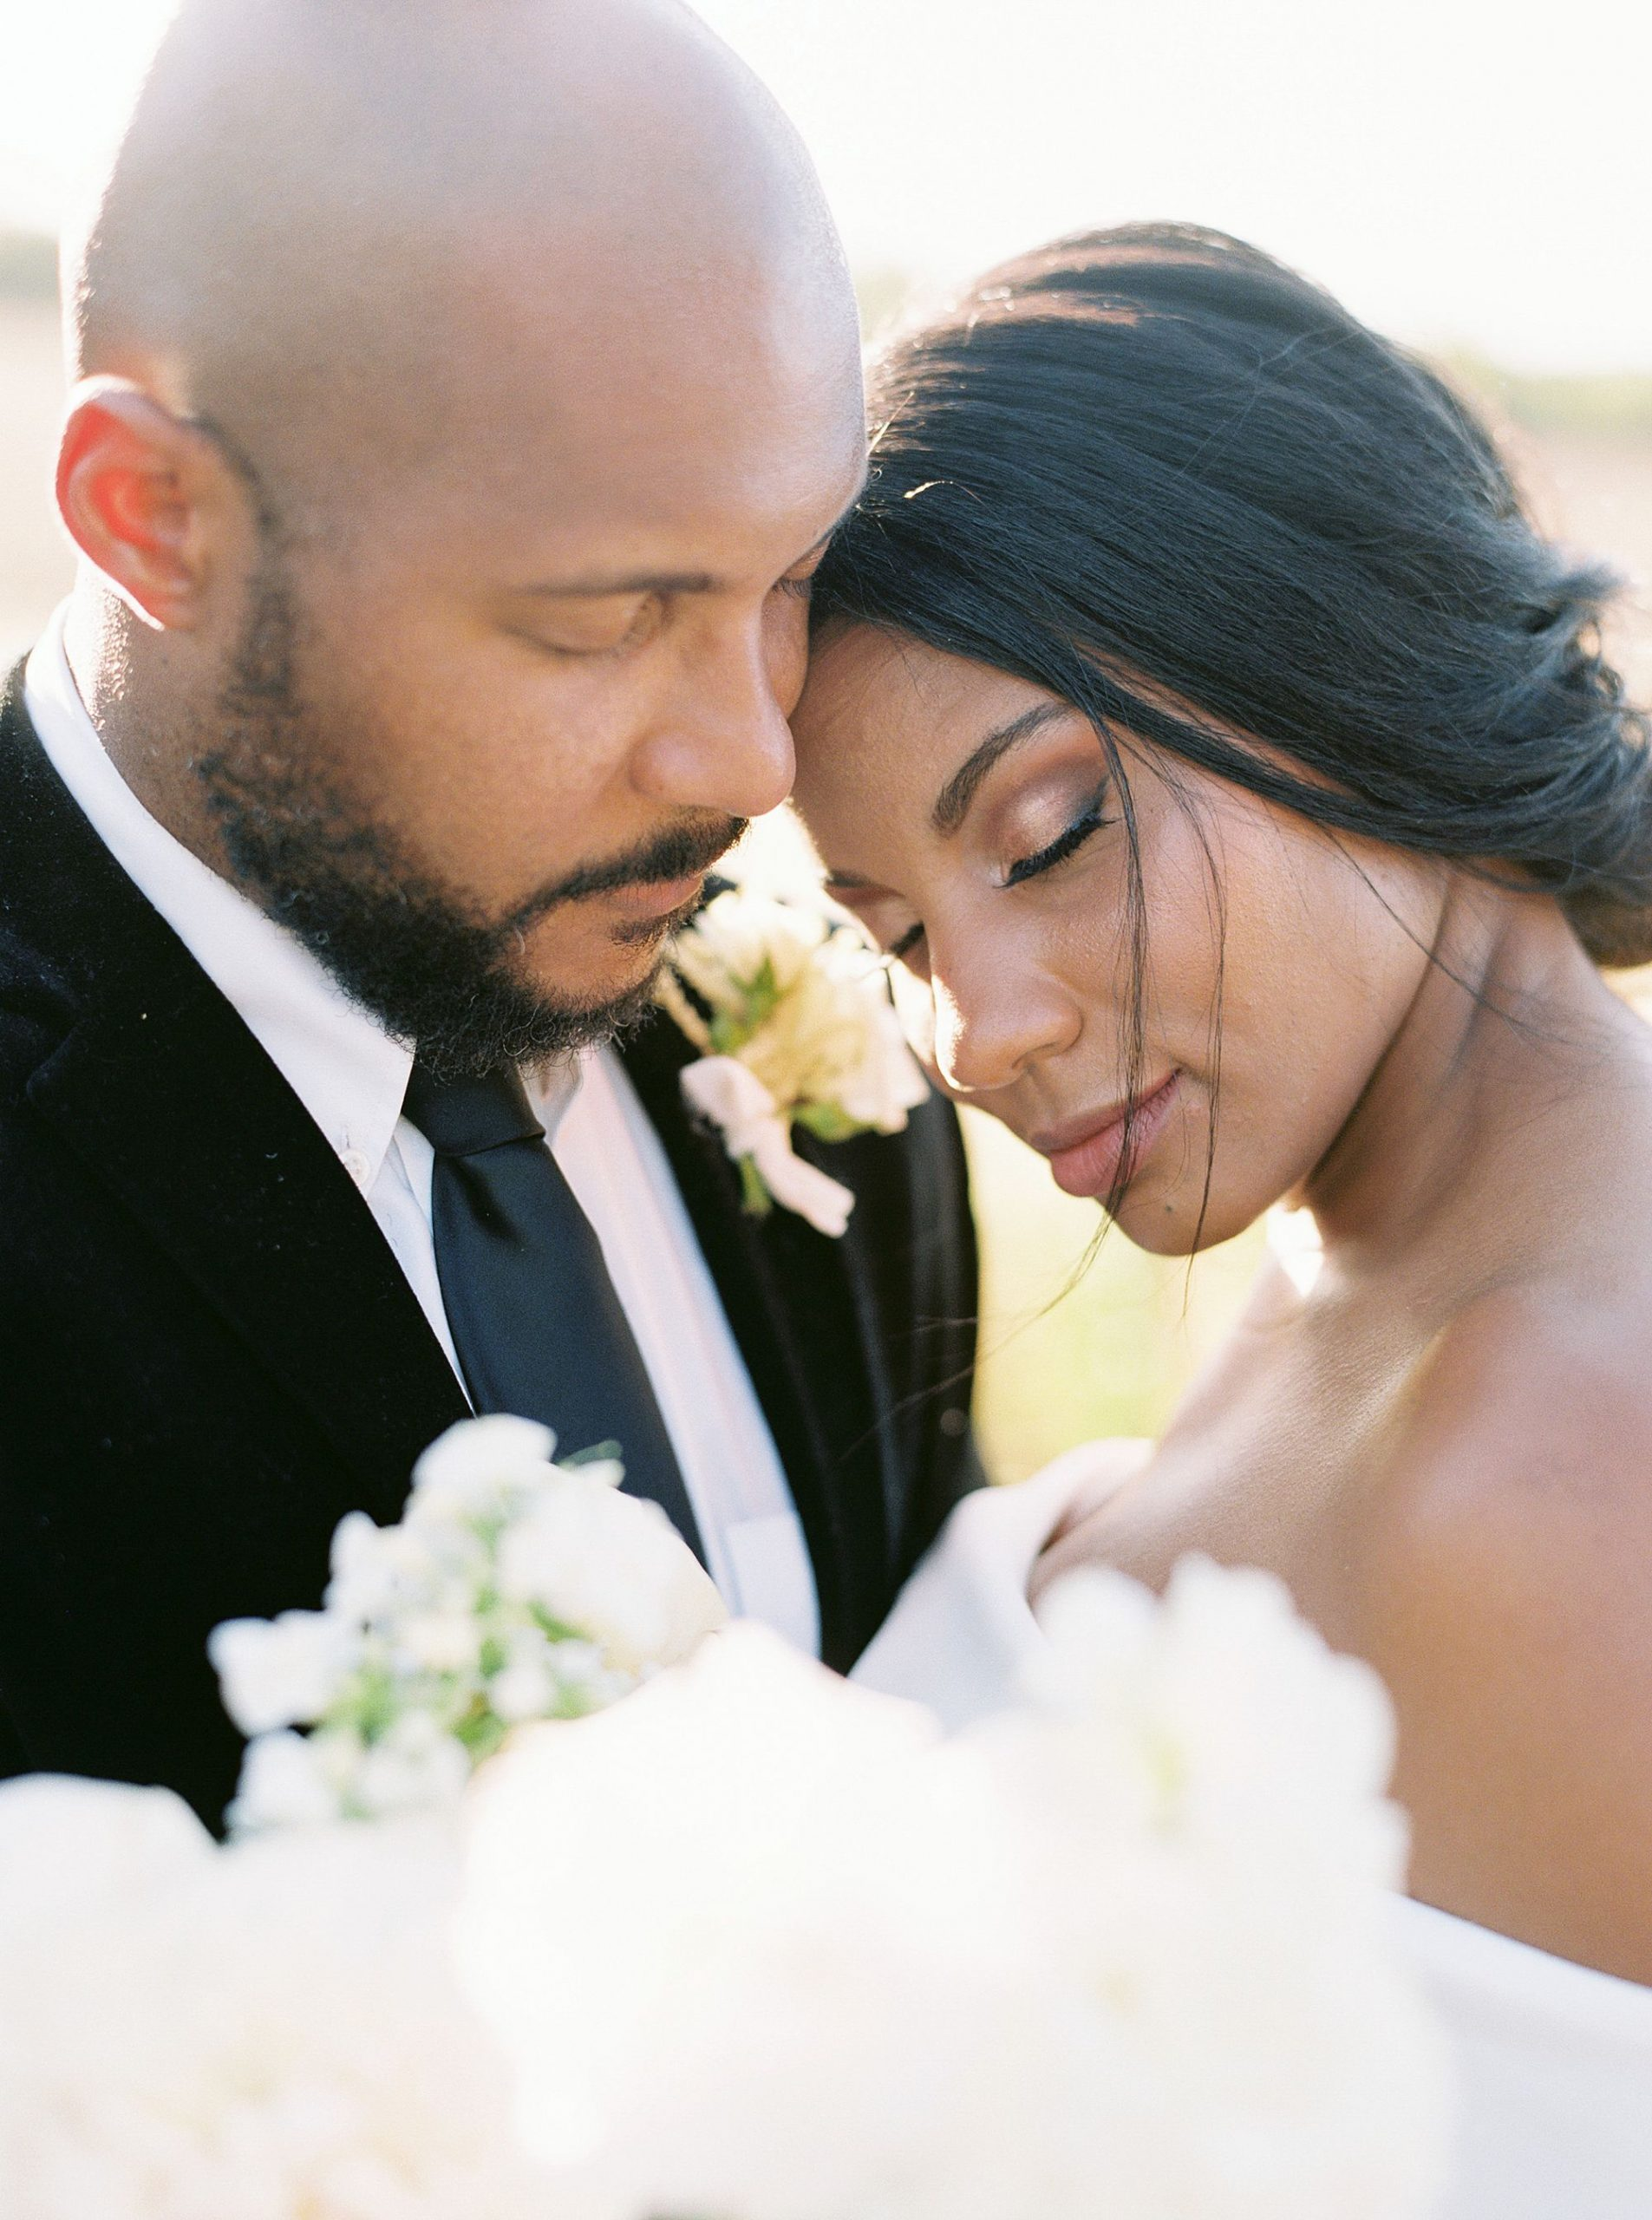 Park Winters Micro-Wedding Inspiration on Style Me Pretty - Stephanie Teague Events - Ashley Baumgartner - Park Winters Wedding - Black Tie Wedding - Micro-Wedding Sacramento Photographer_0044.jpg